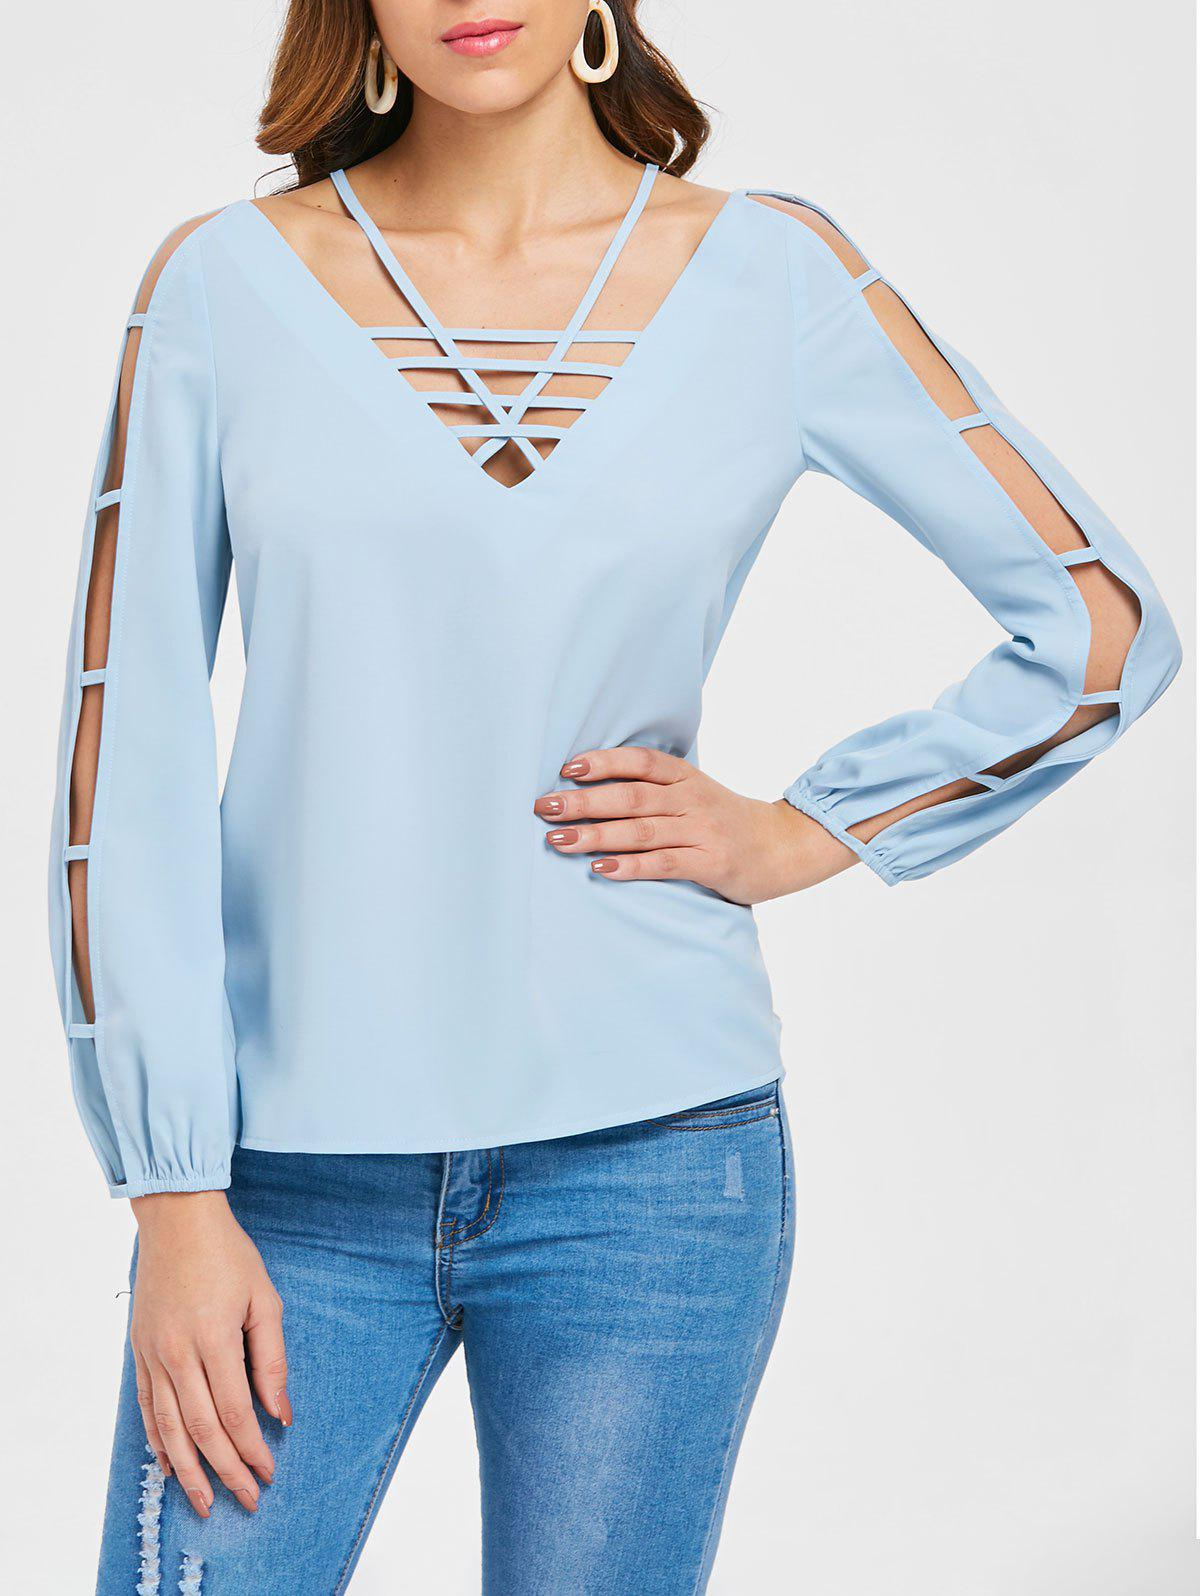 Strappy Ladder Cut Out Top - BABY BLUE 2XL